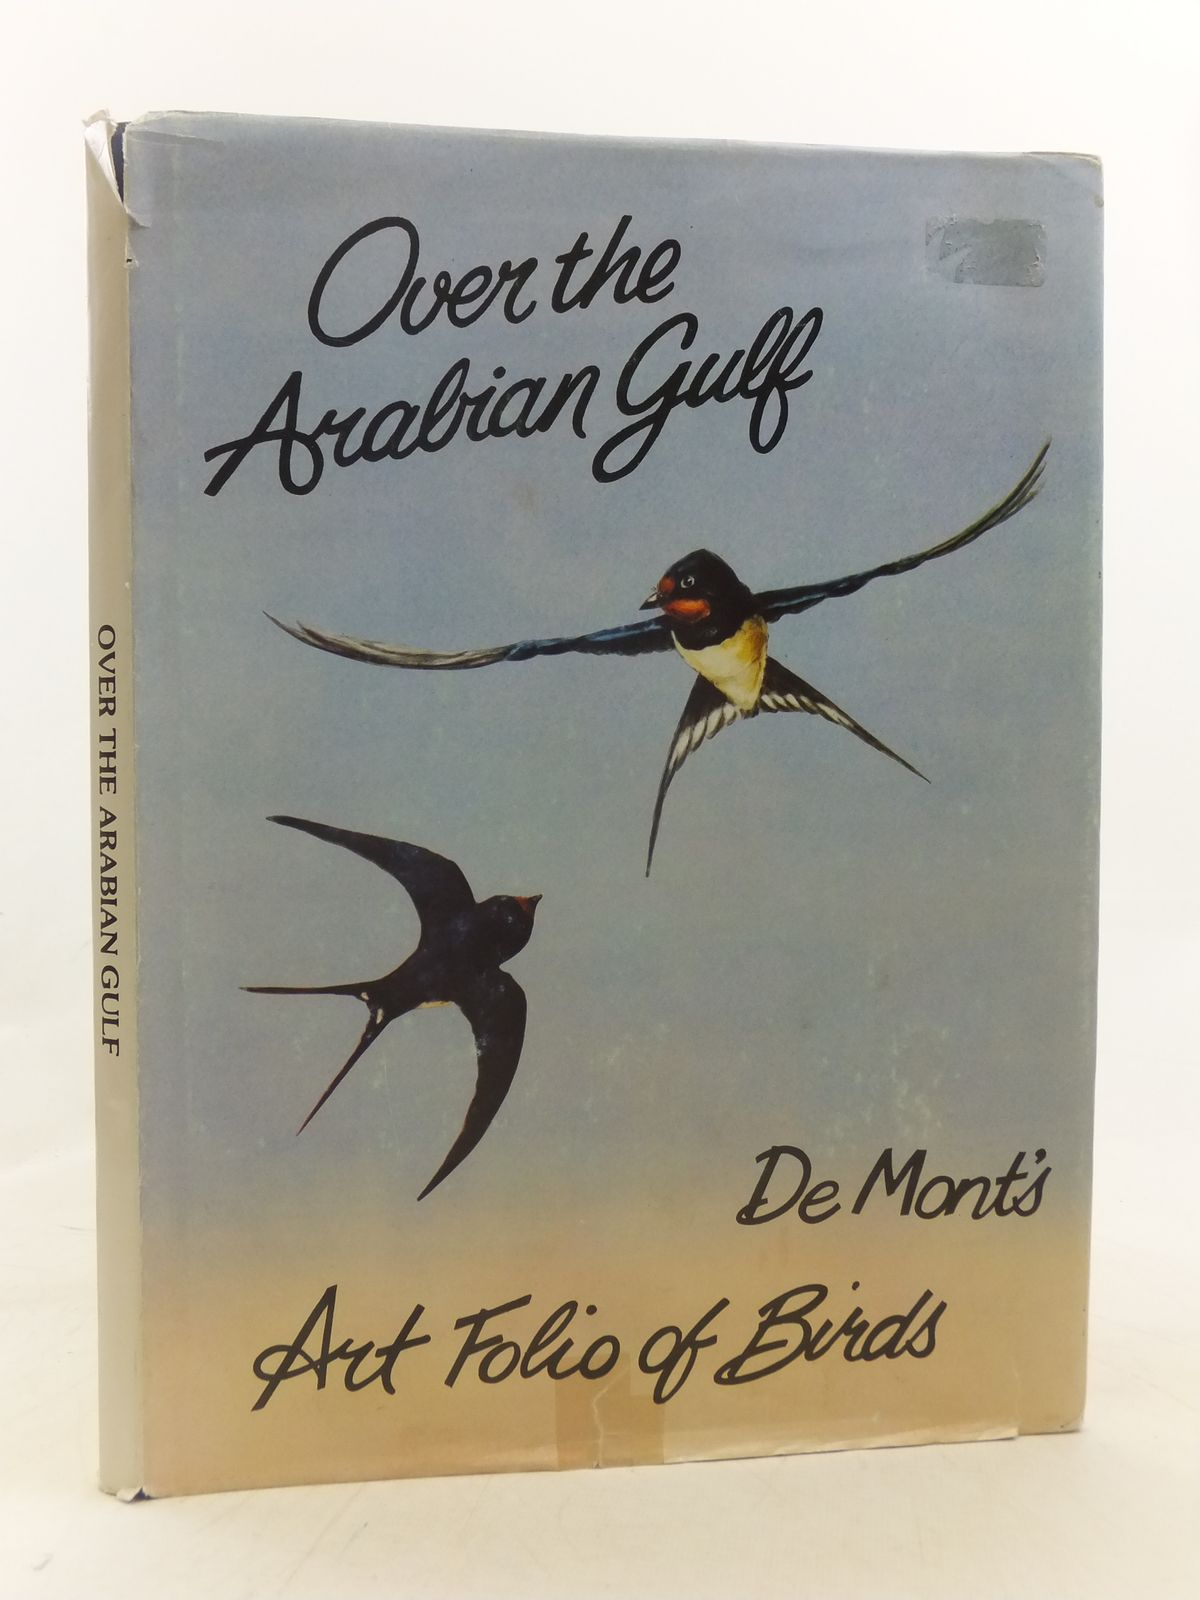 Photo of OVER THE ARABIAN GULF written by Widgery, Desmond E. illustrated by De Mont, published by De Mont Publications (STOCK CODE: 1606229)  for sale by Stella & Rose's Books